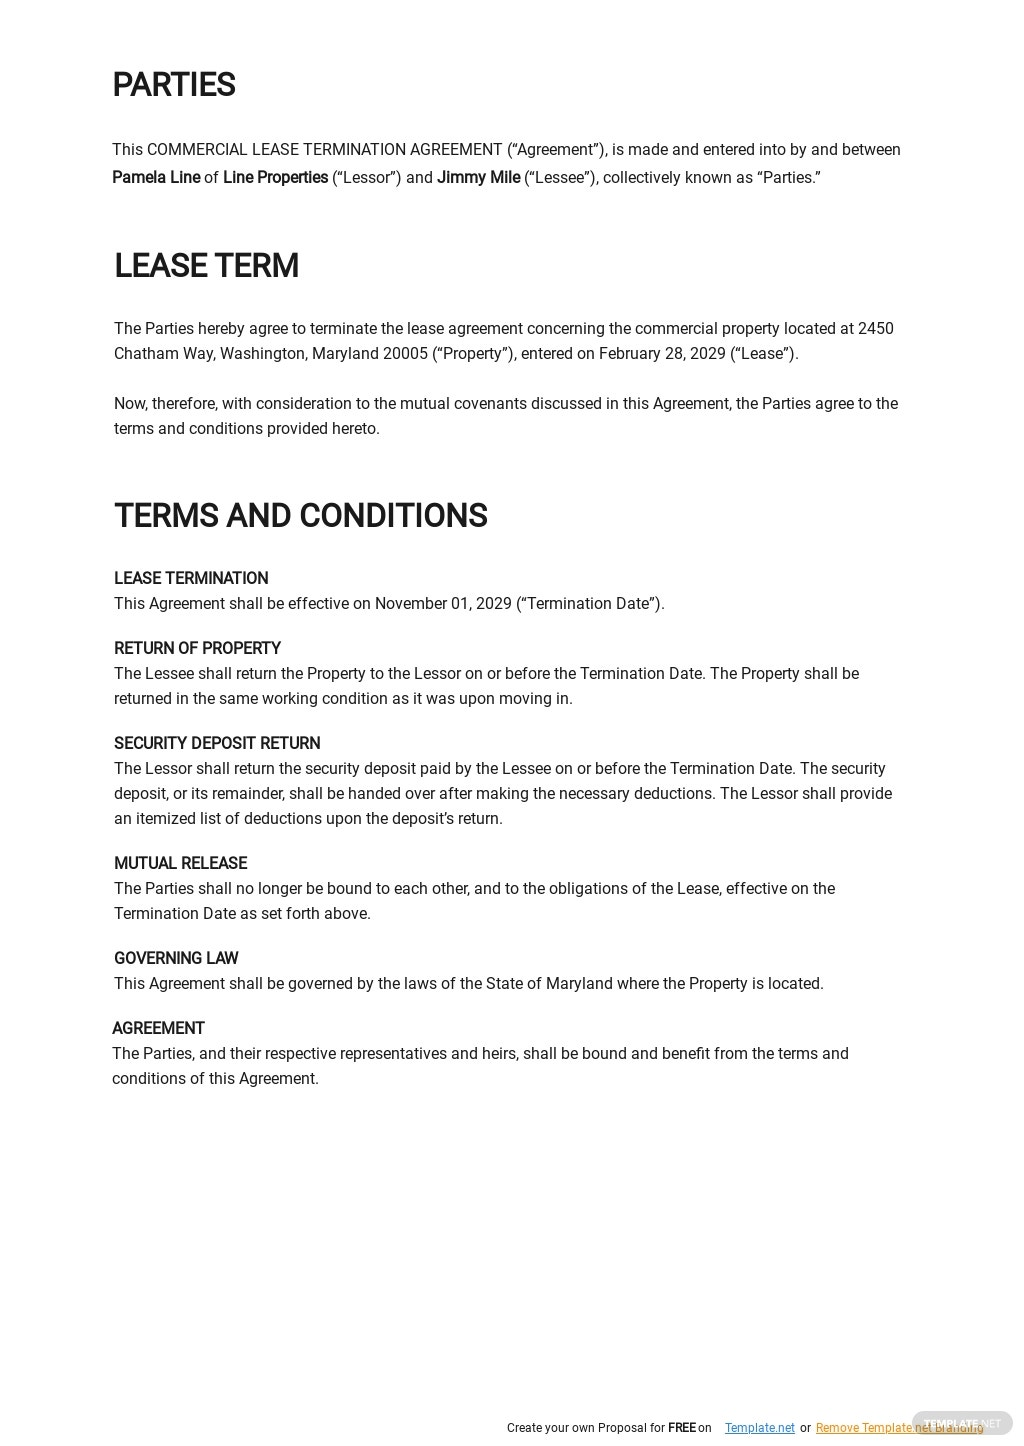 Commercial Lease Termination Agreement Template 1.jpe